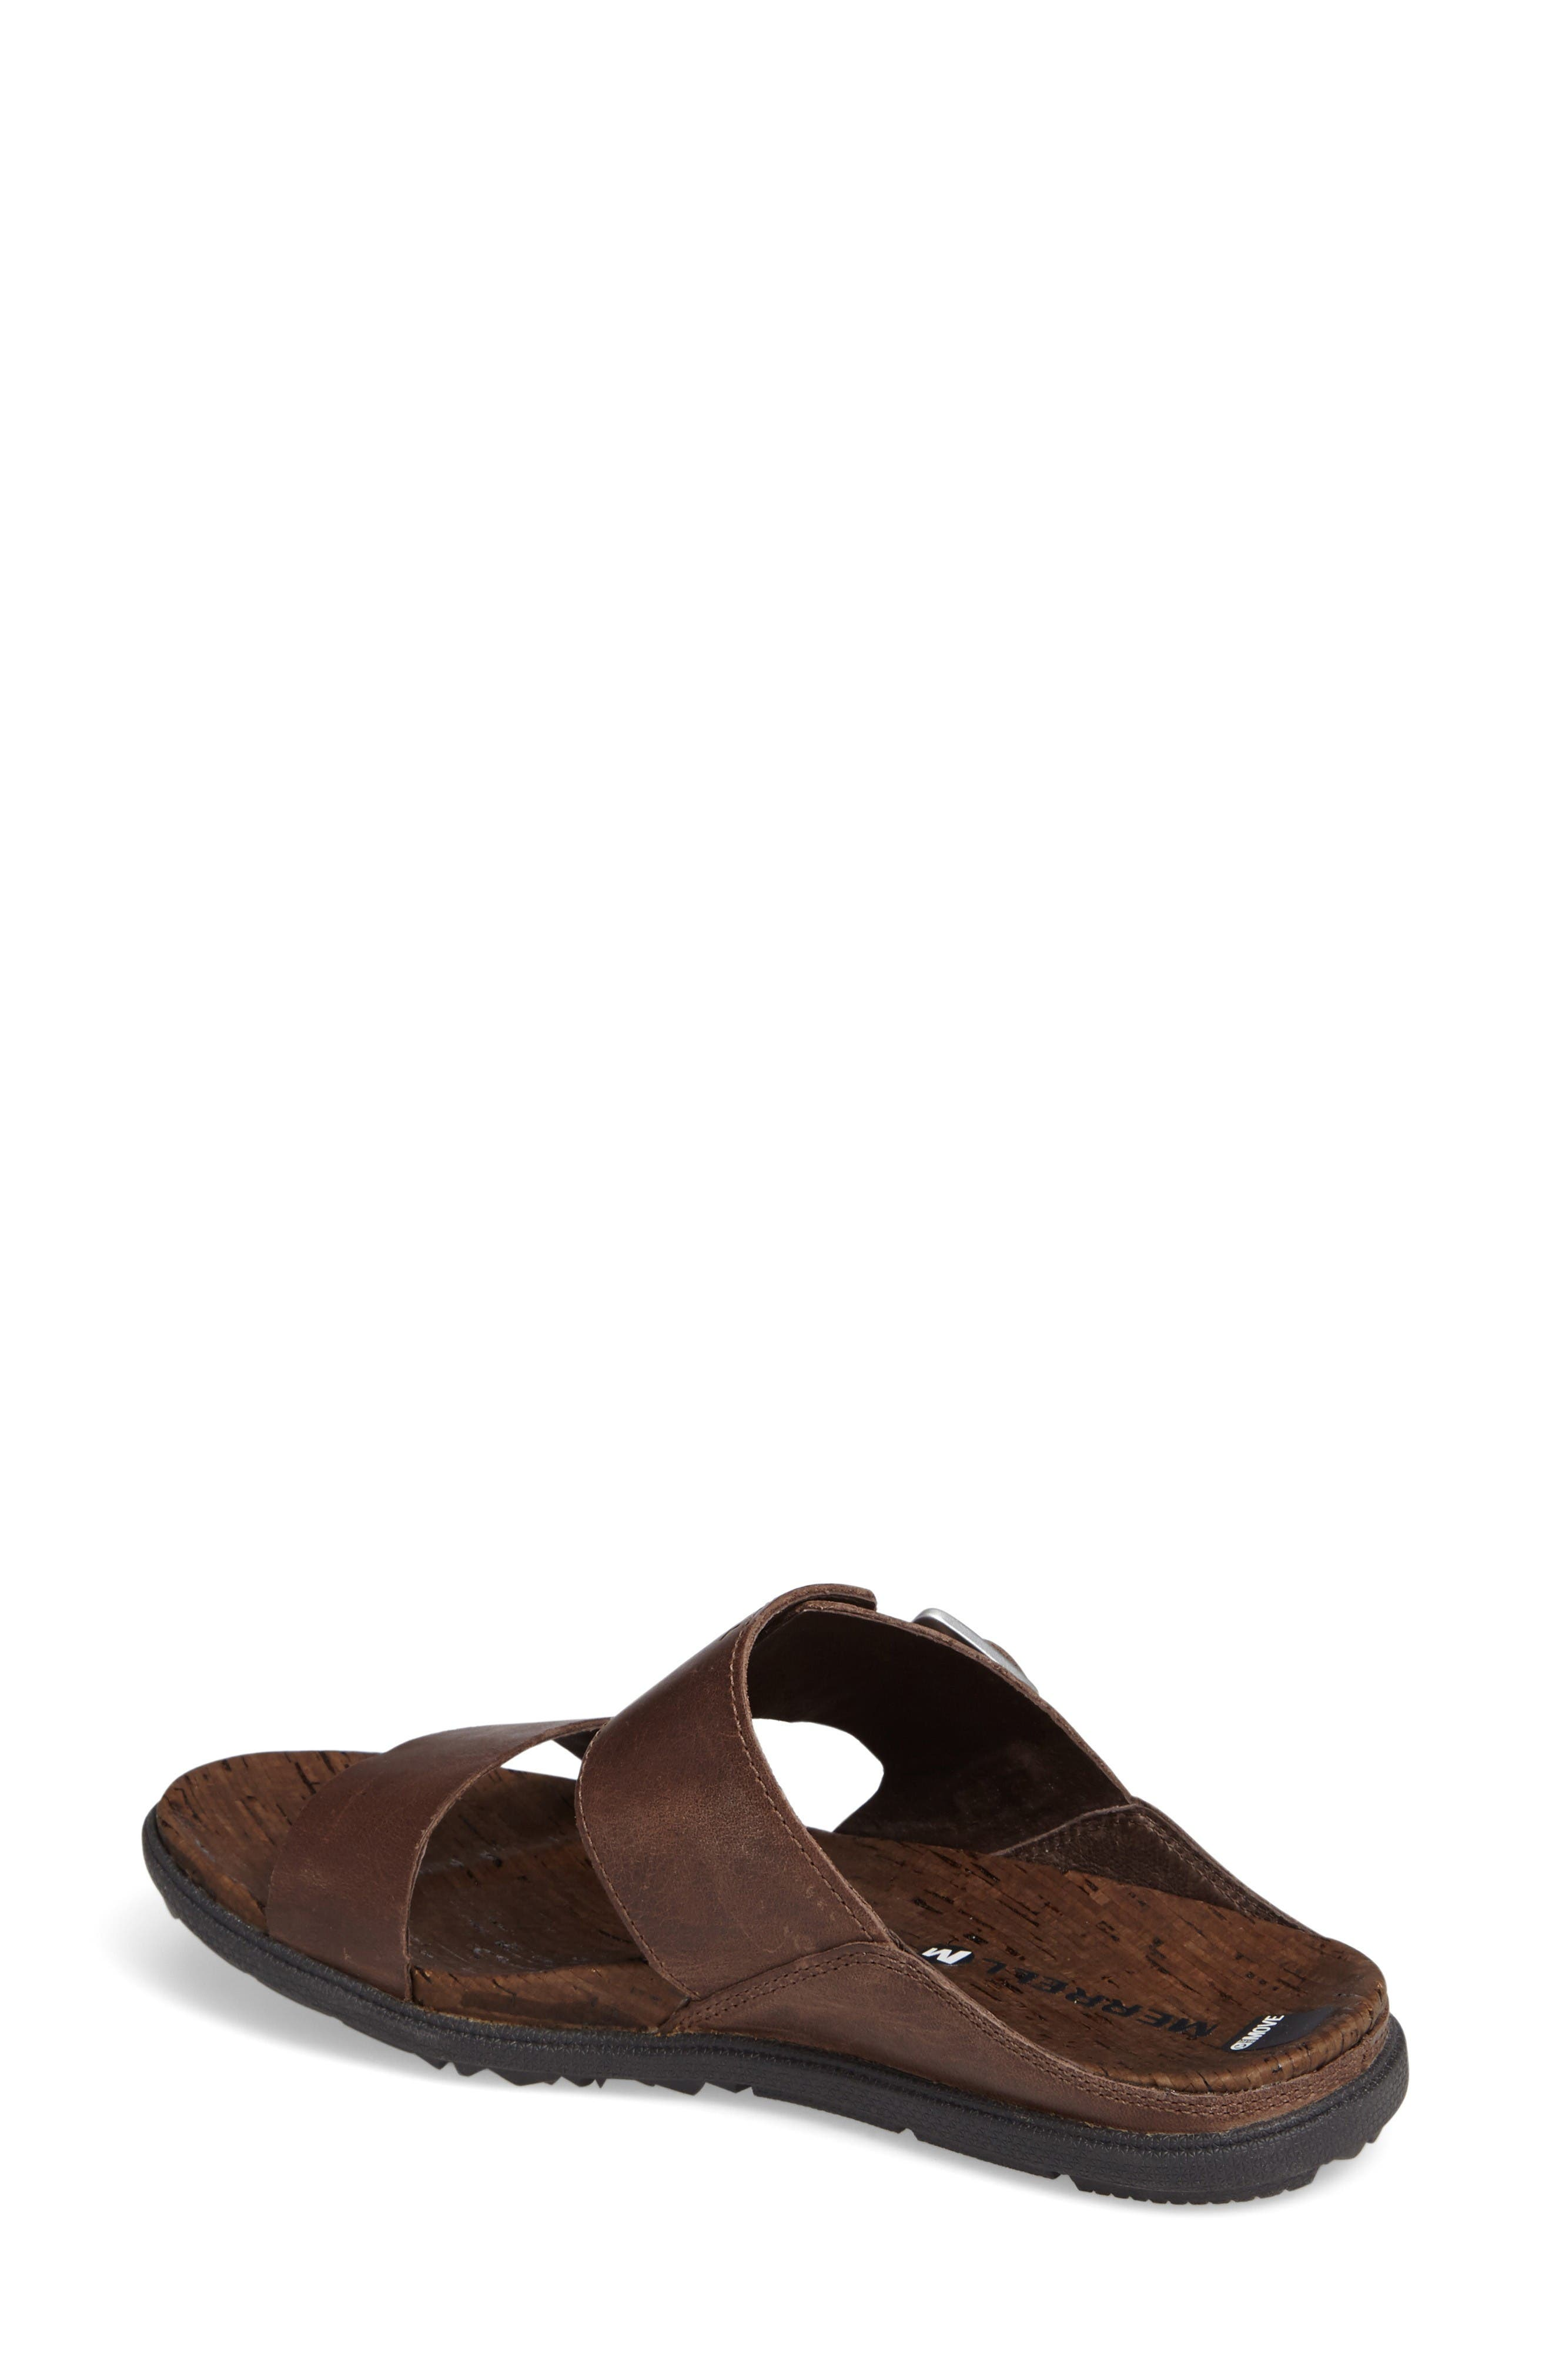 Around Town Slide Sandal,                             Alternate thumbnail 2, color,                             Brown Leather